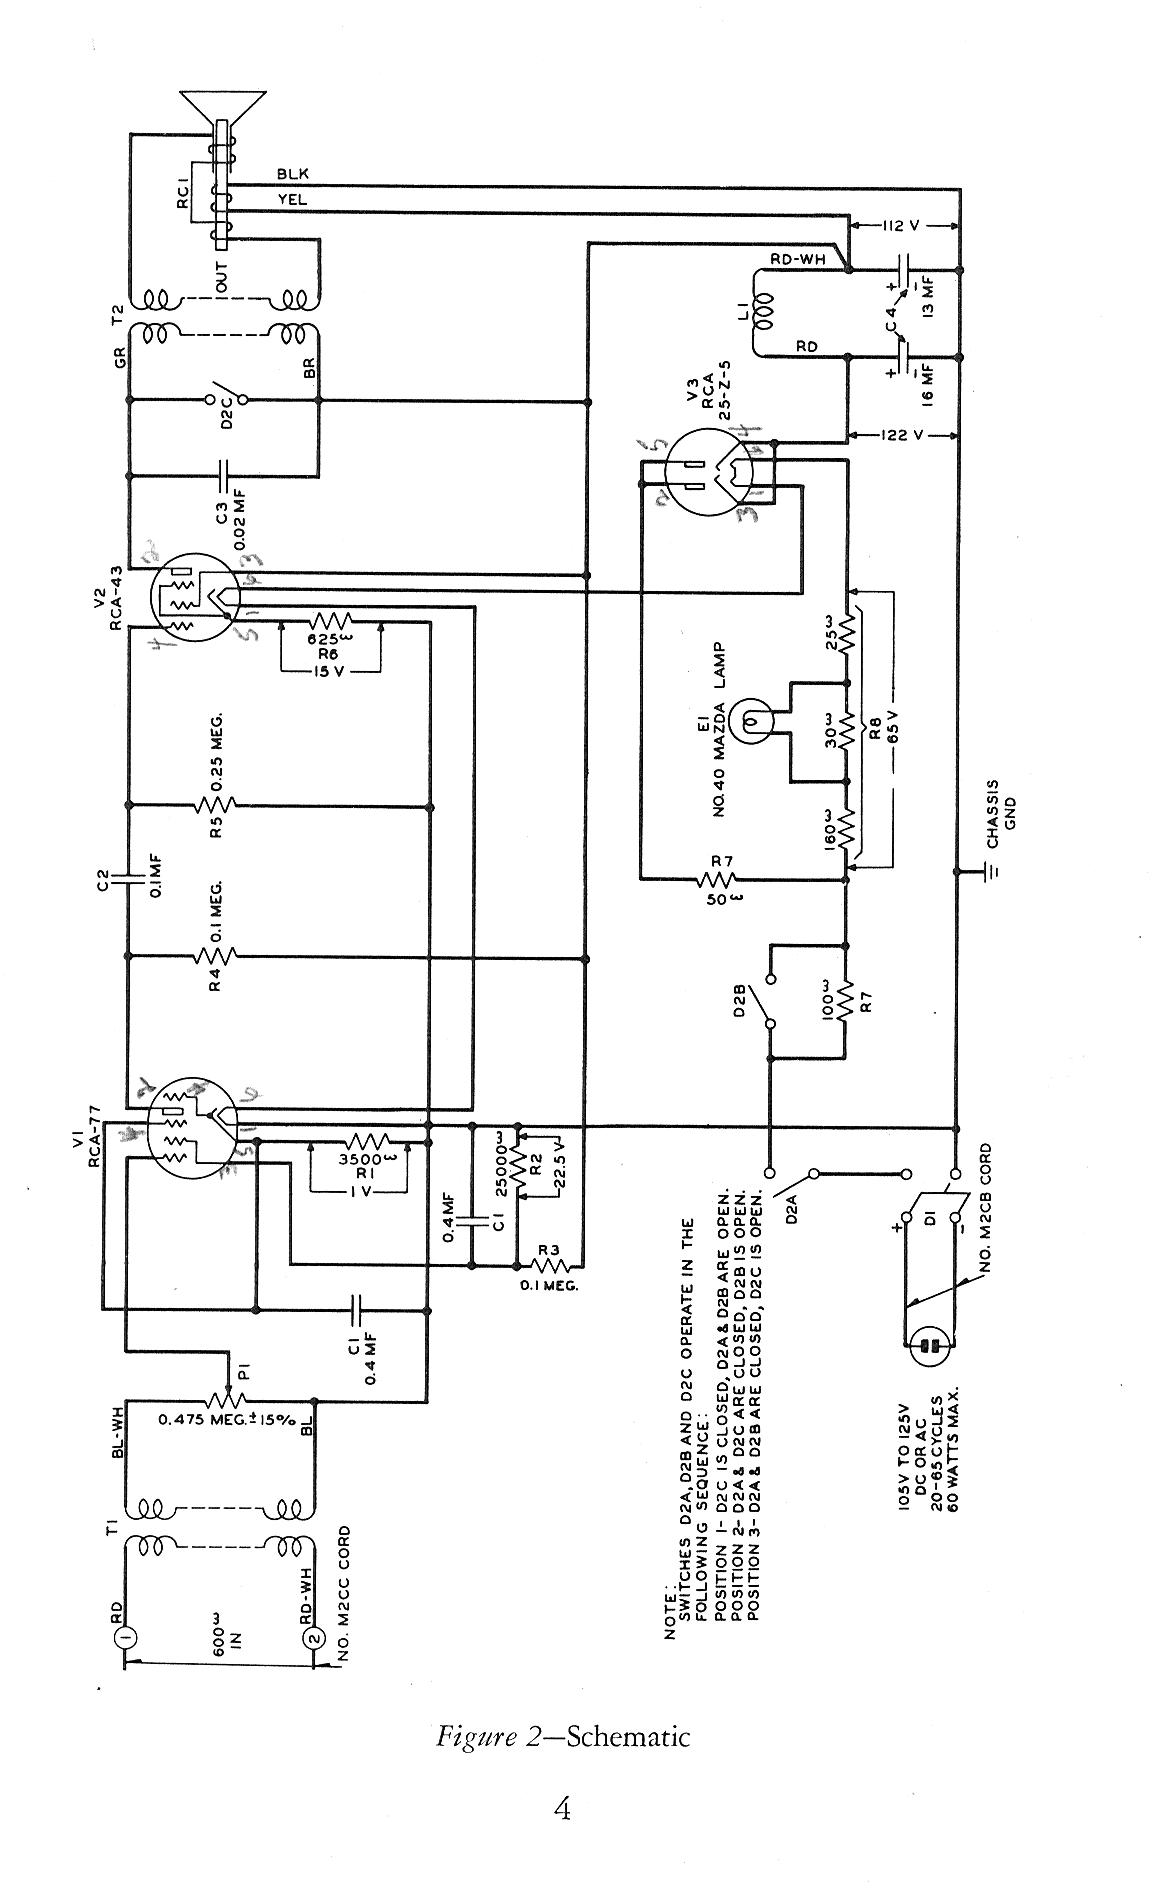 [WRG-4274] Wire Diagram For A 50 Amp 120 Volt Rv Circuit